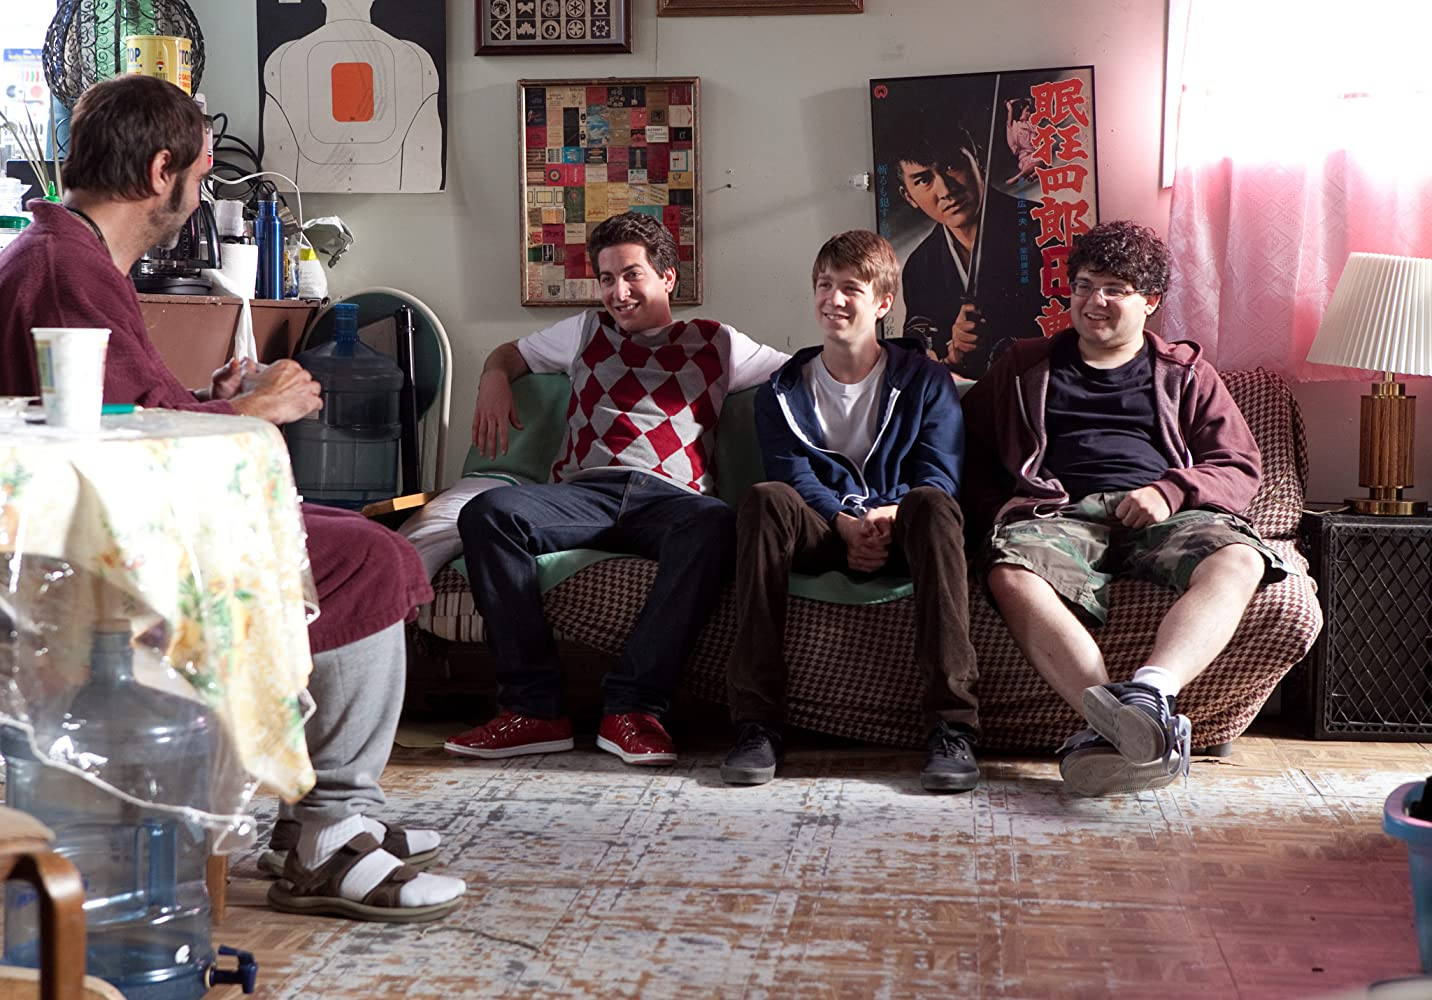 Rick Shapiro, Thomas Mann, Oliver Cooper, and Jonathan Daniel Brown in Project X (2012)